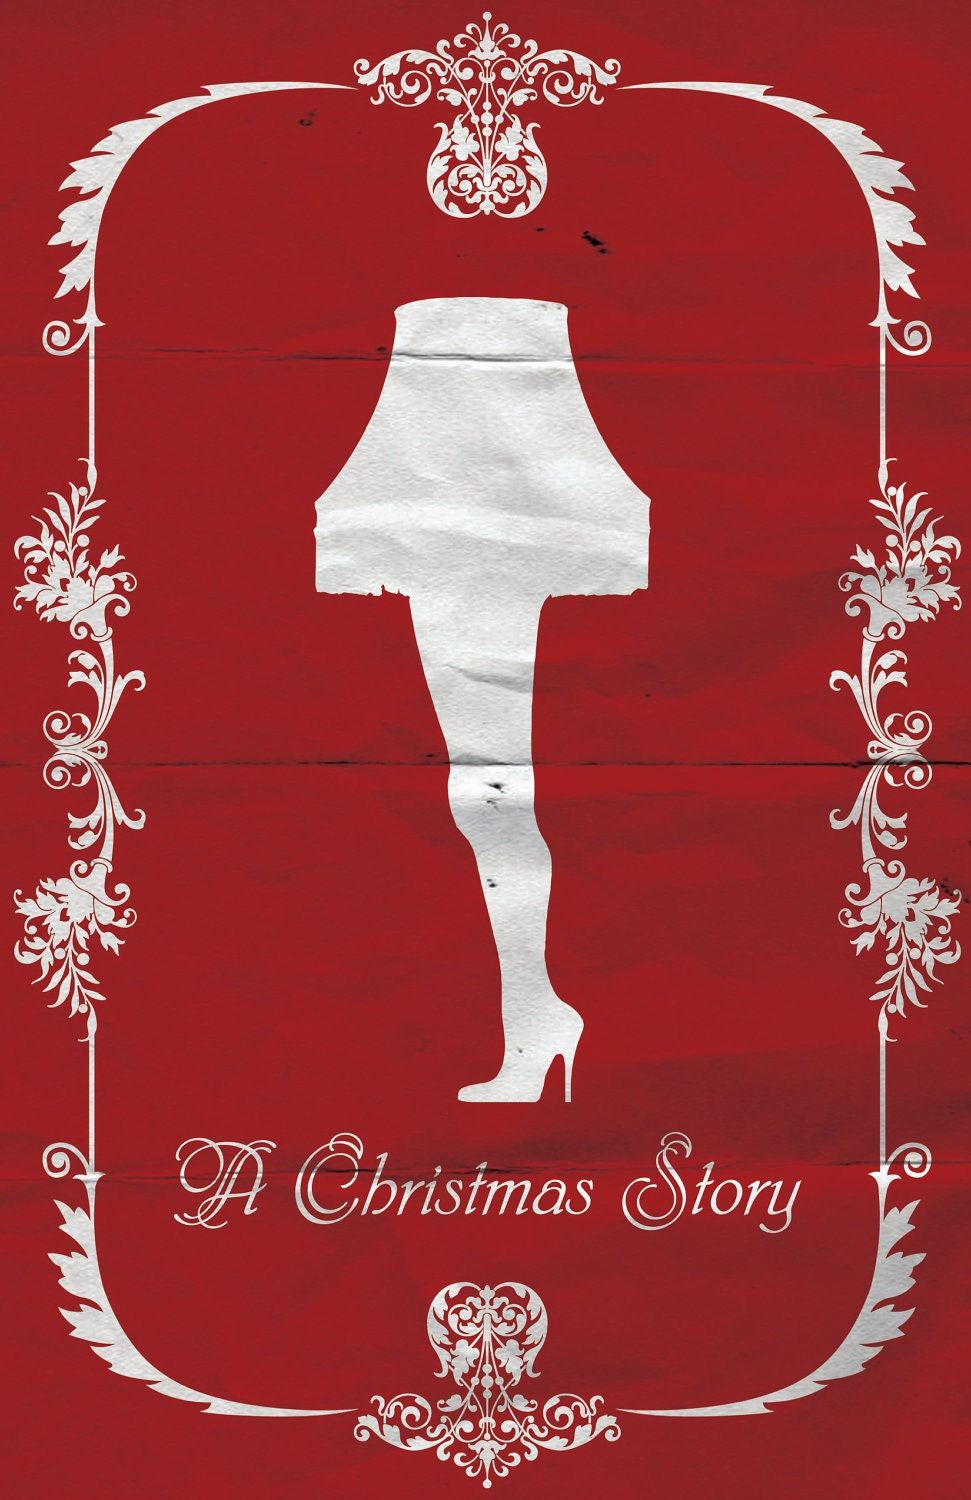 Christmas story film poster by sap41387 on etsy